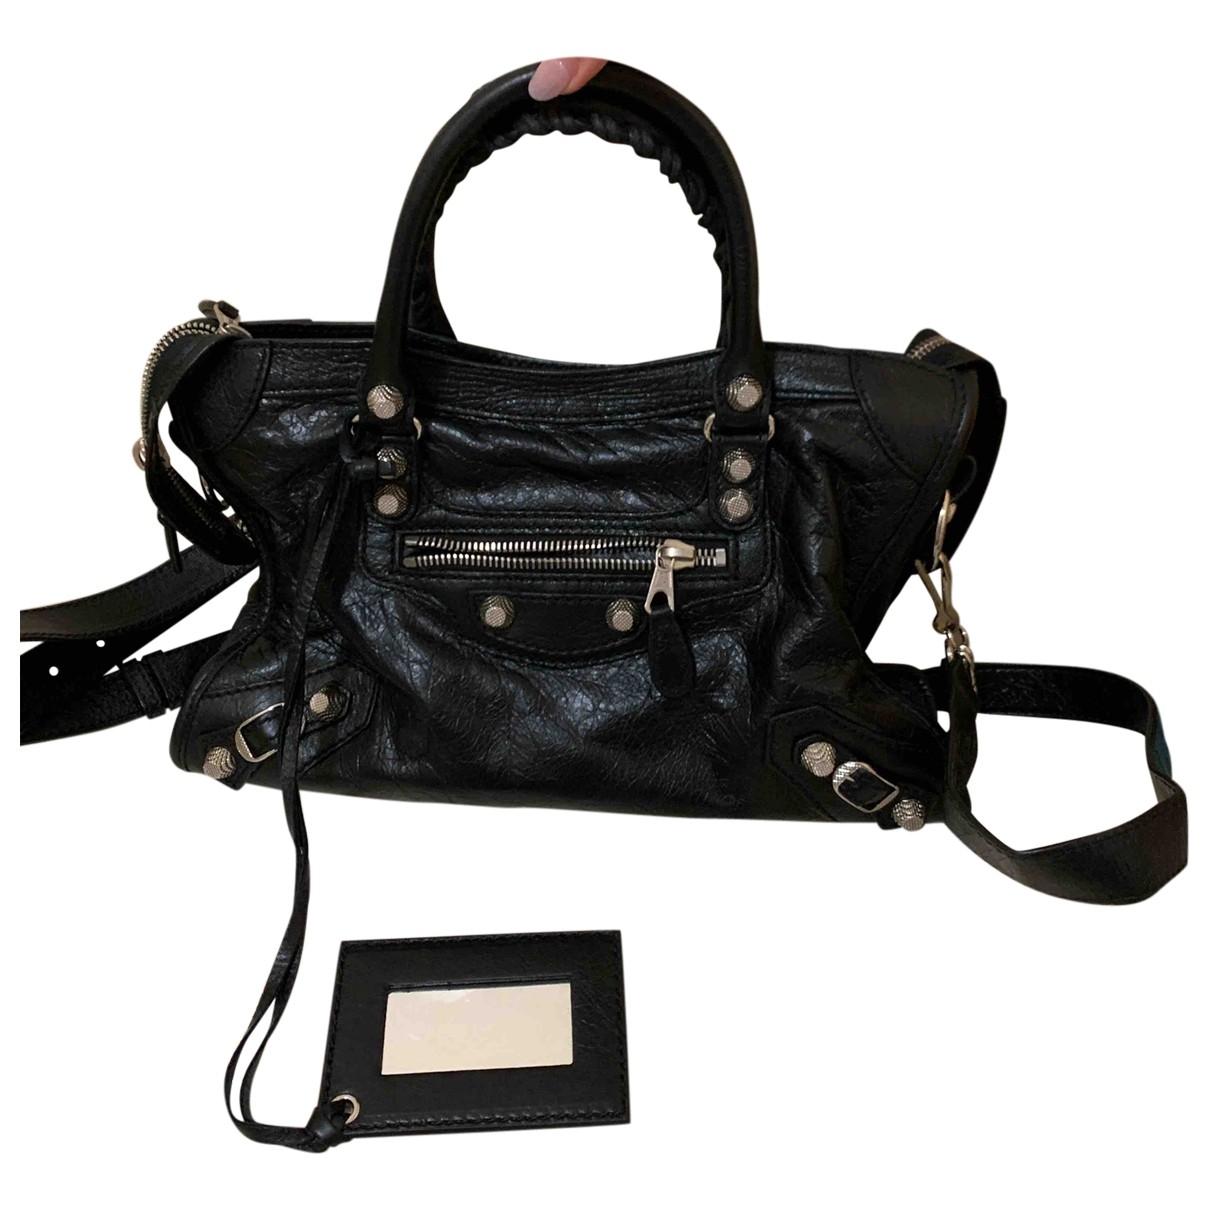 Balenciaga City Black Leather handbag for Women \N